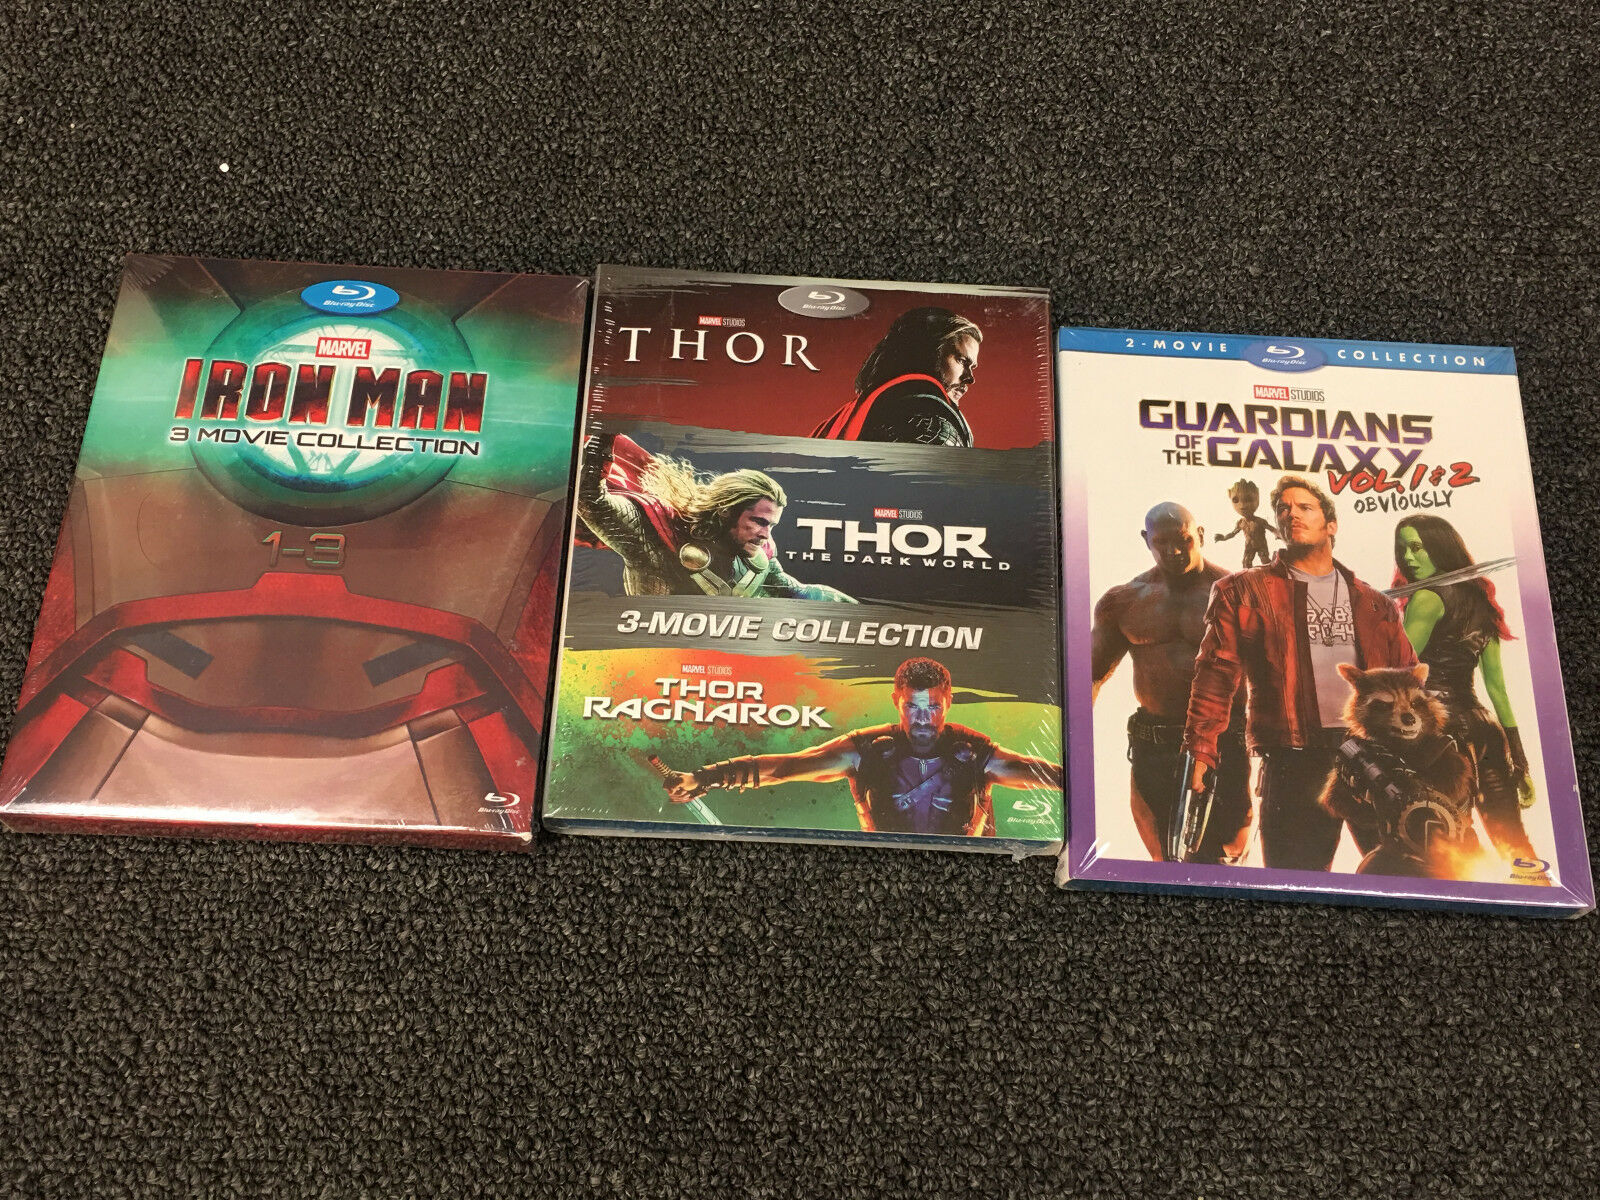 THOR & Guardians of the Galaxy & Iron Man Movie Collections [Blu-Ray Box Set] US